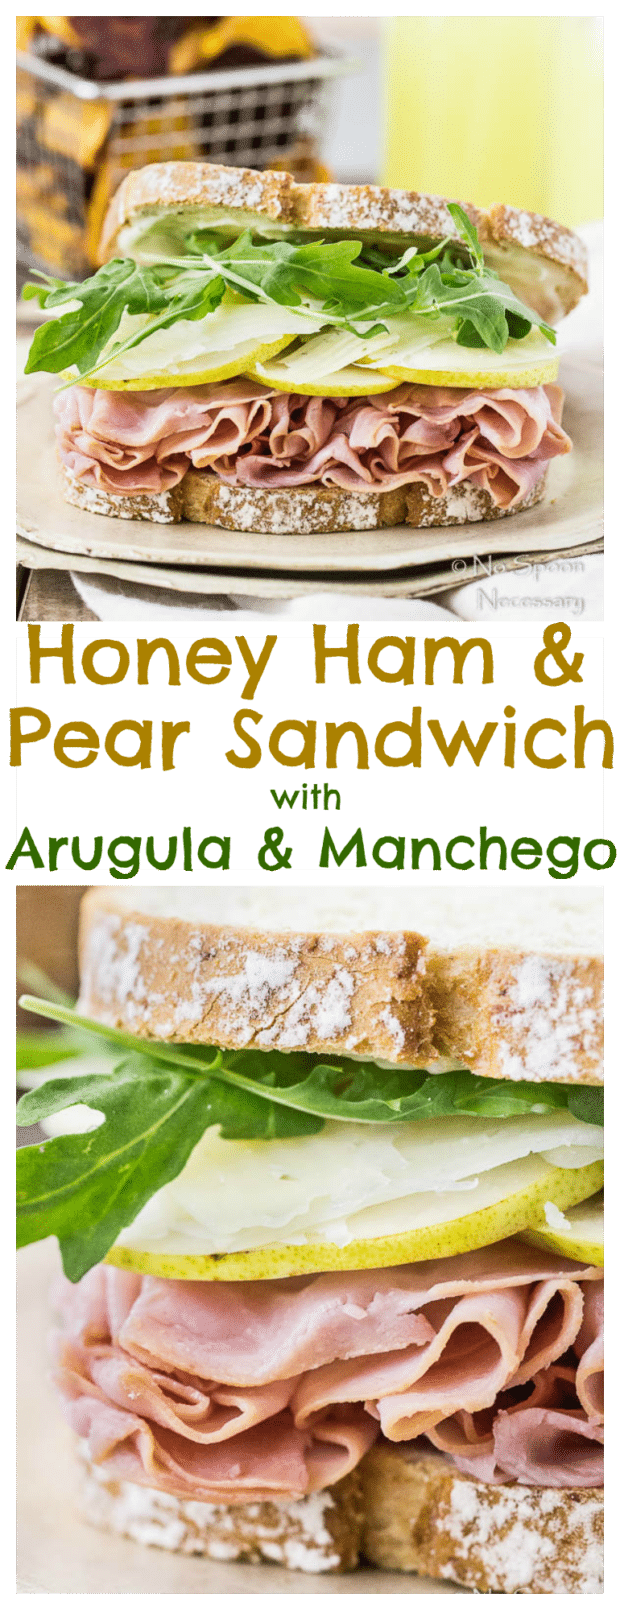 ham-pear-sandwich-with-arugula-manchego-long-pin1